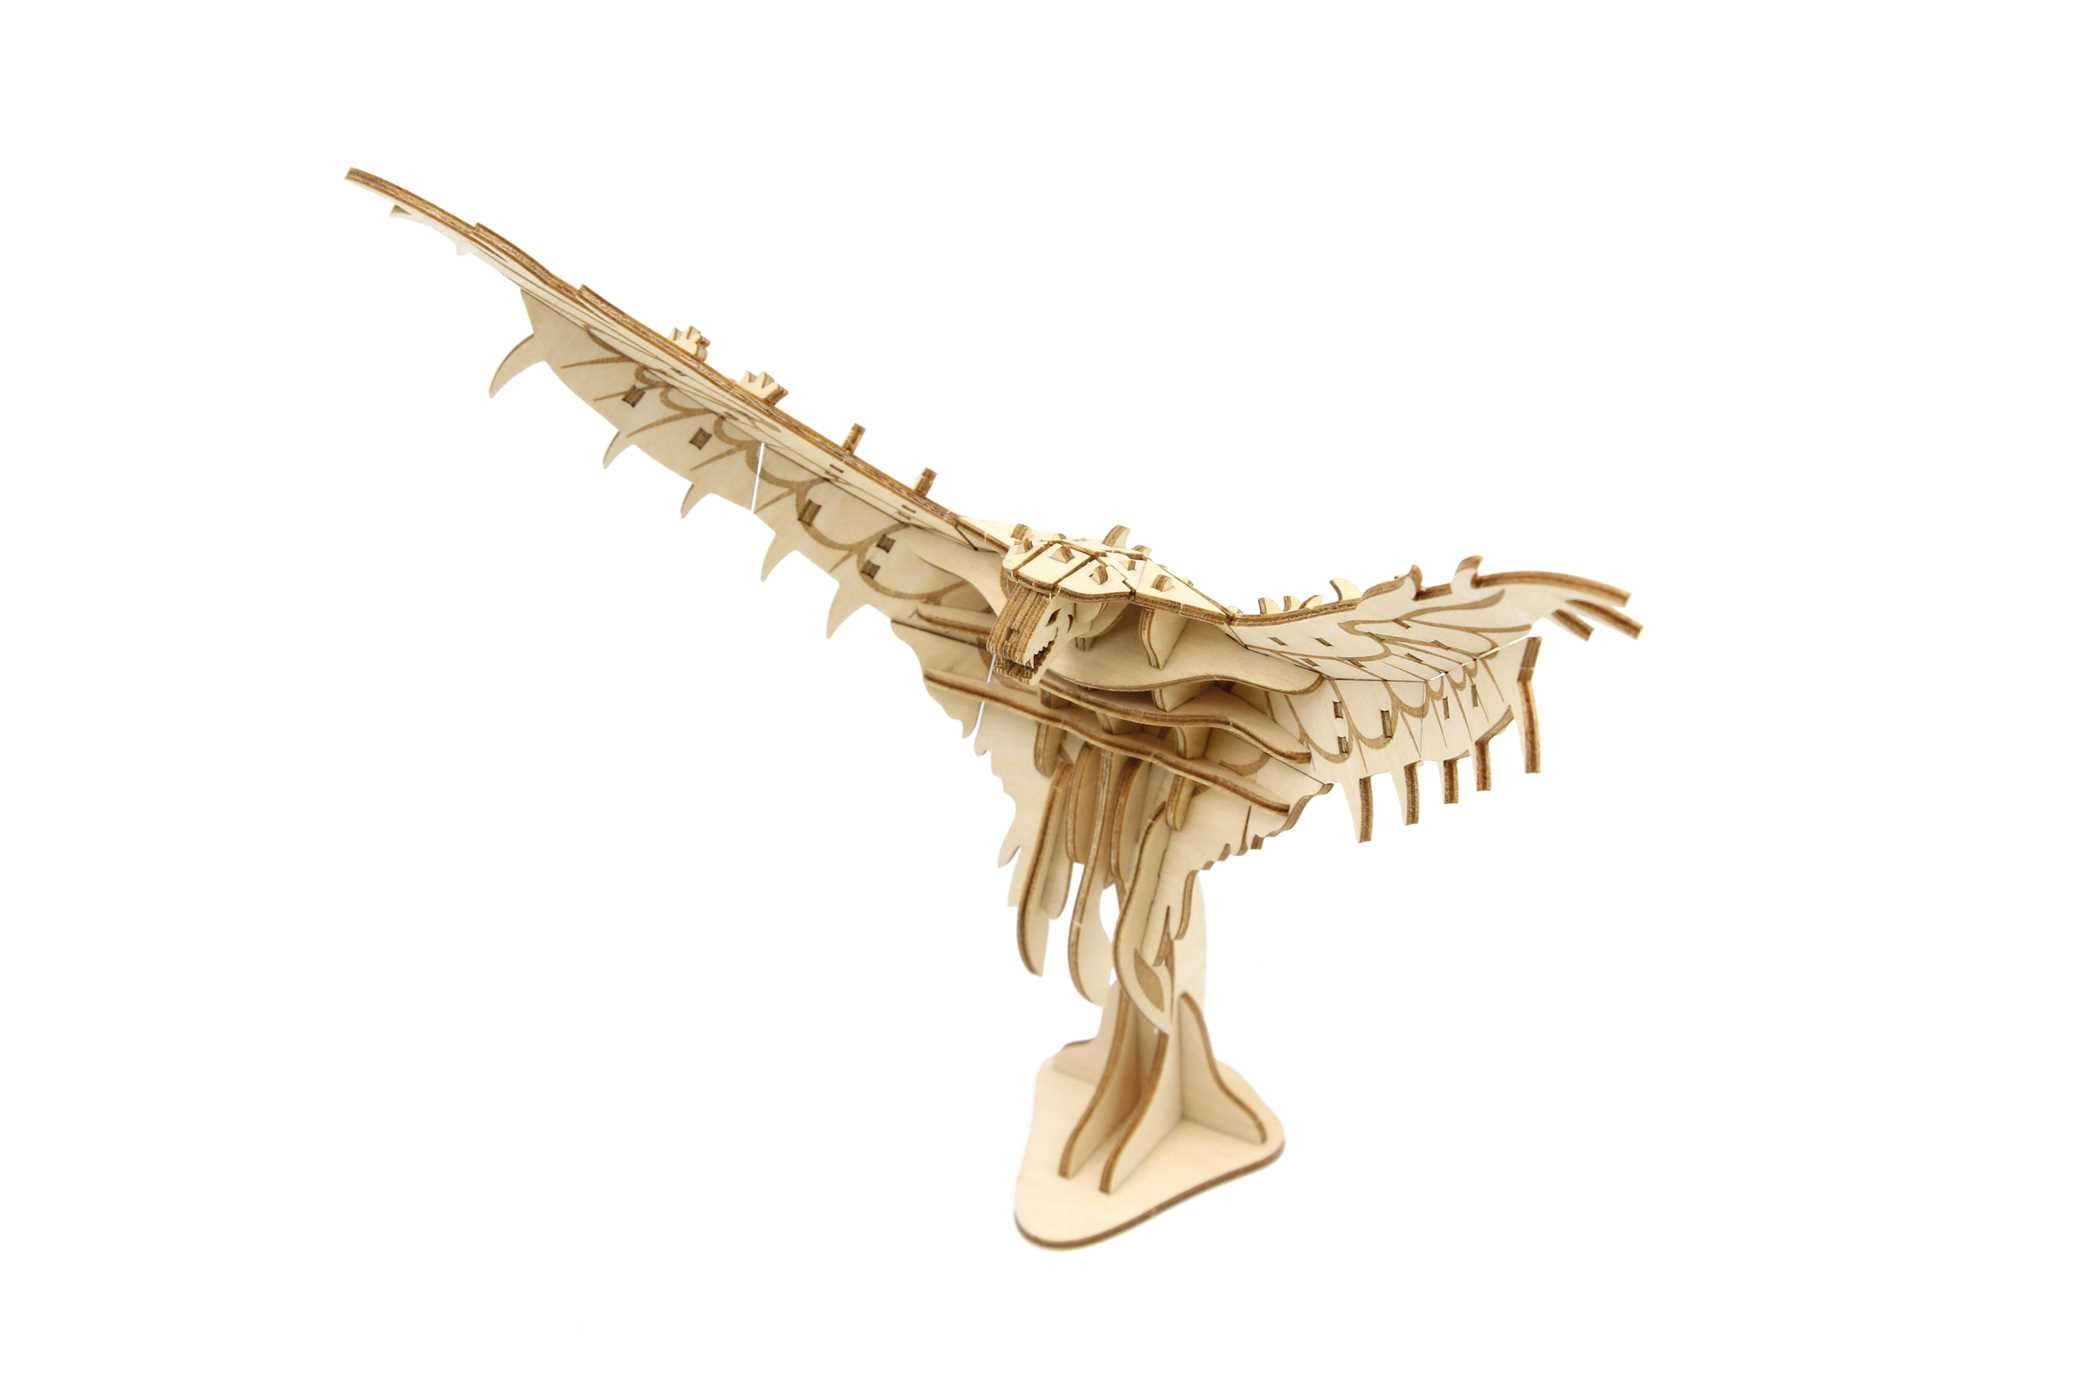 Incredibuilds fantastic beasts and where to find them swooping evil 3d wood model and booklet 9781682980606.in01